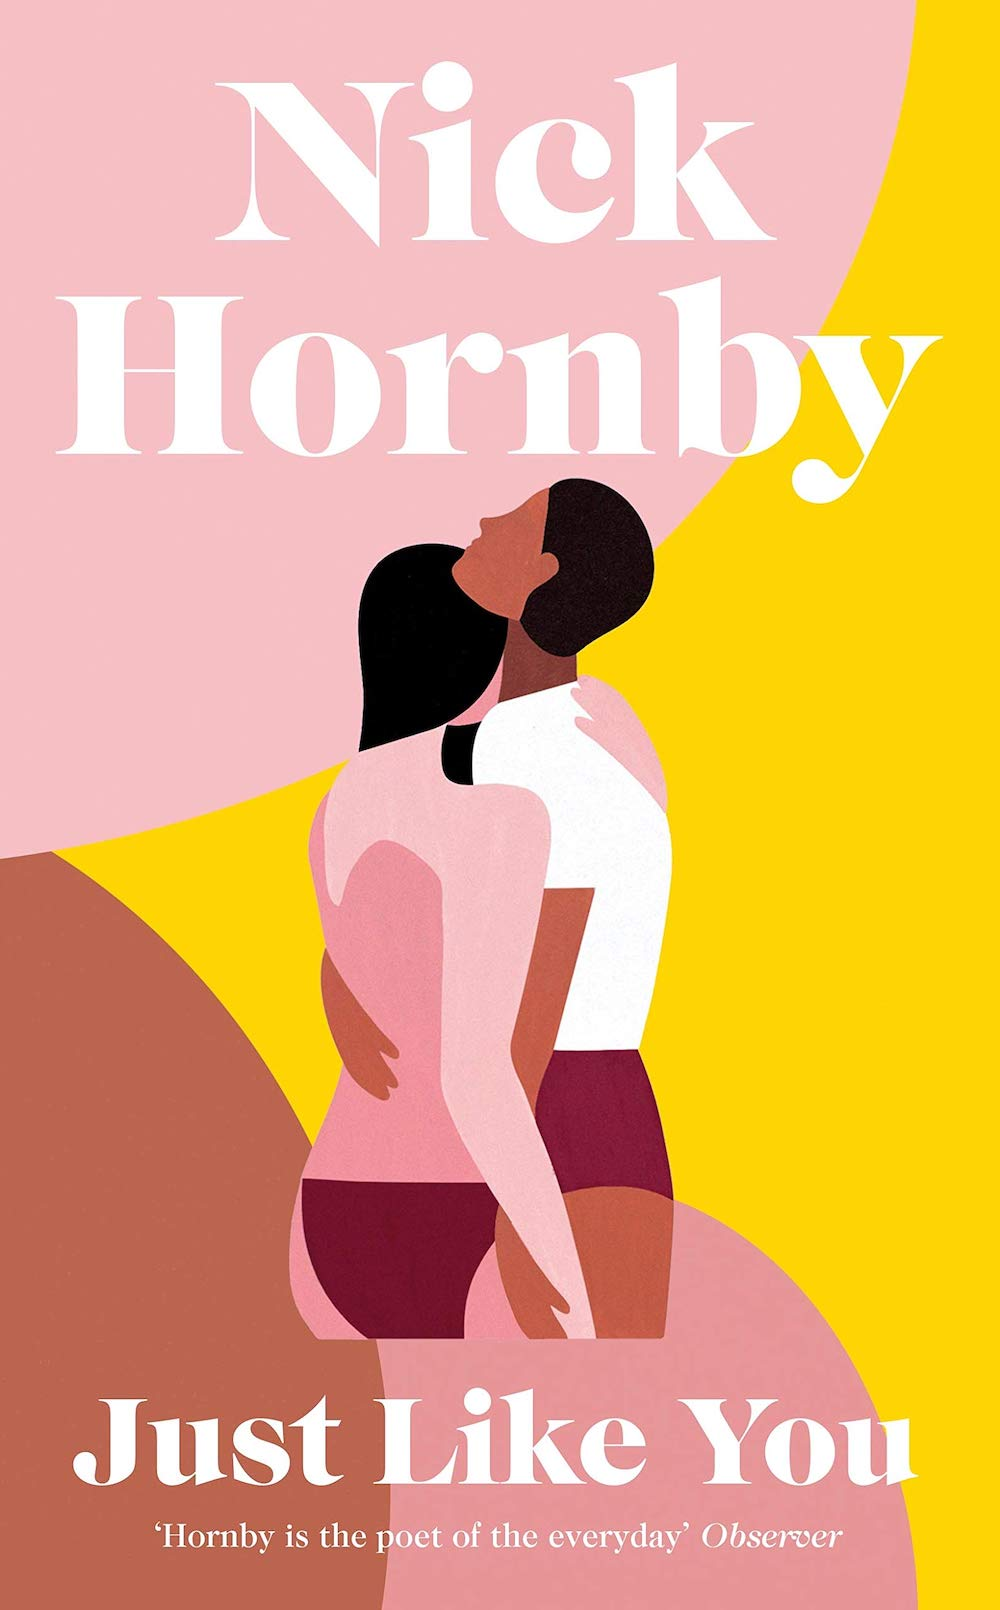 Nick-Hornby-Just-Like-You